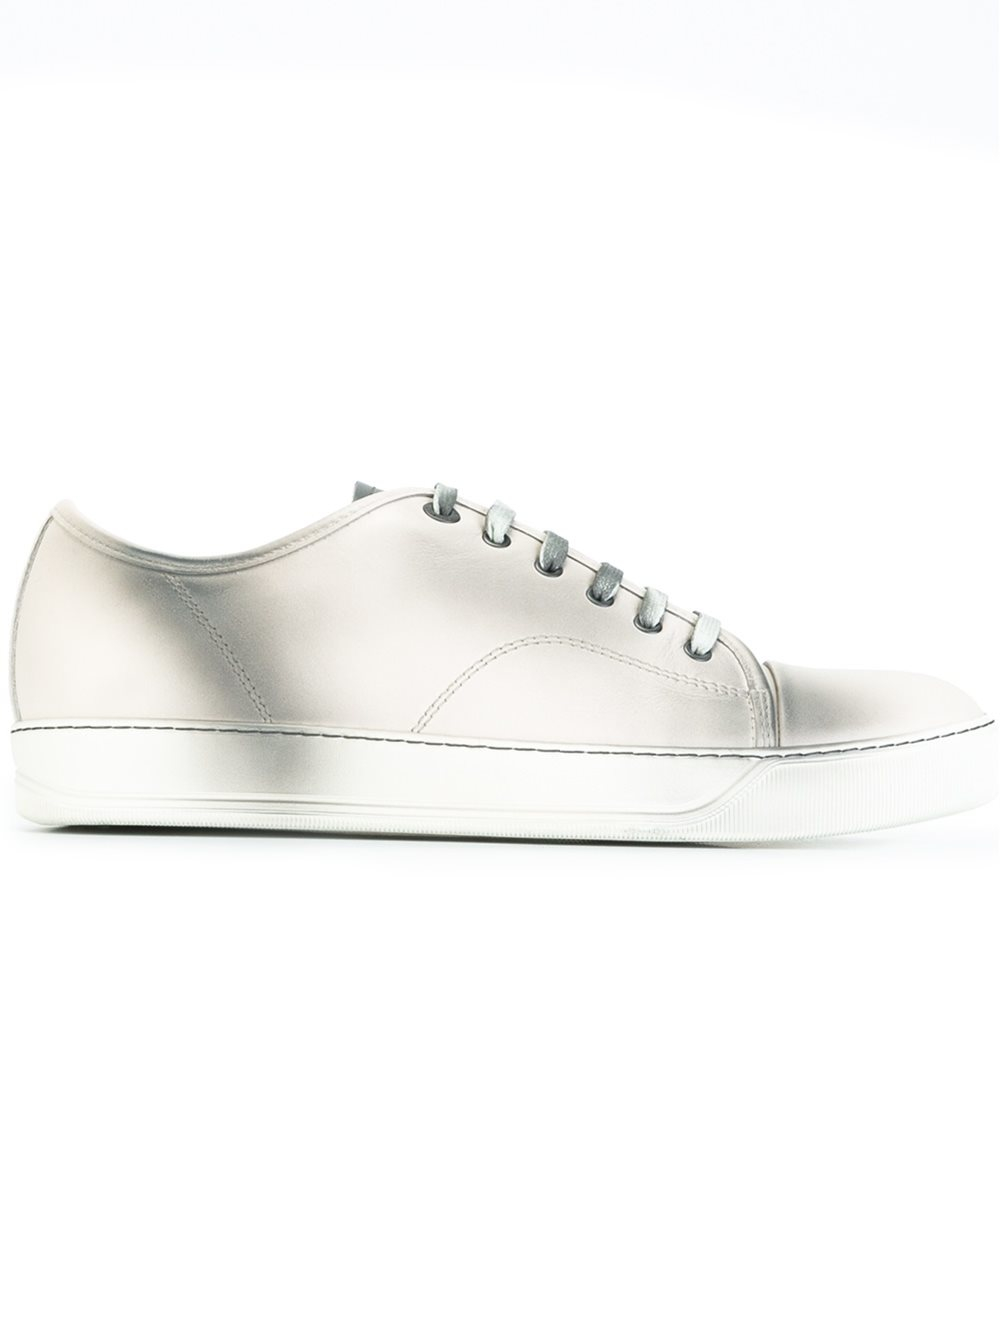 lanvin low top spray paint sneakers in white for men lyst. Black Bedroom Furniture Sets. Home Design Ideas